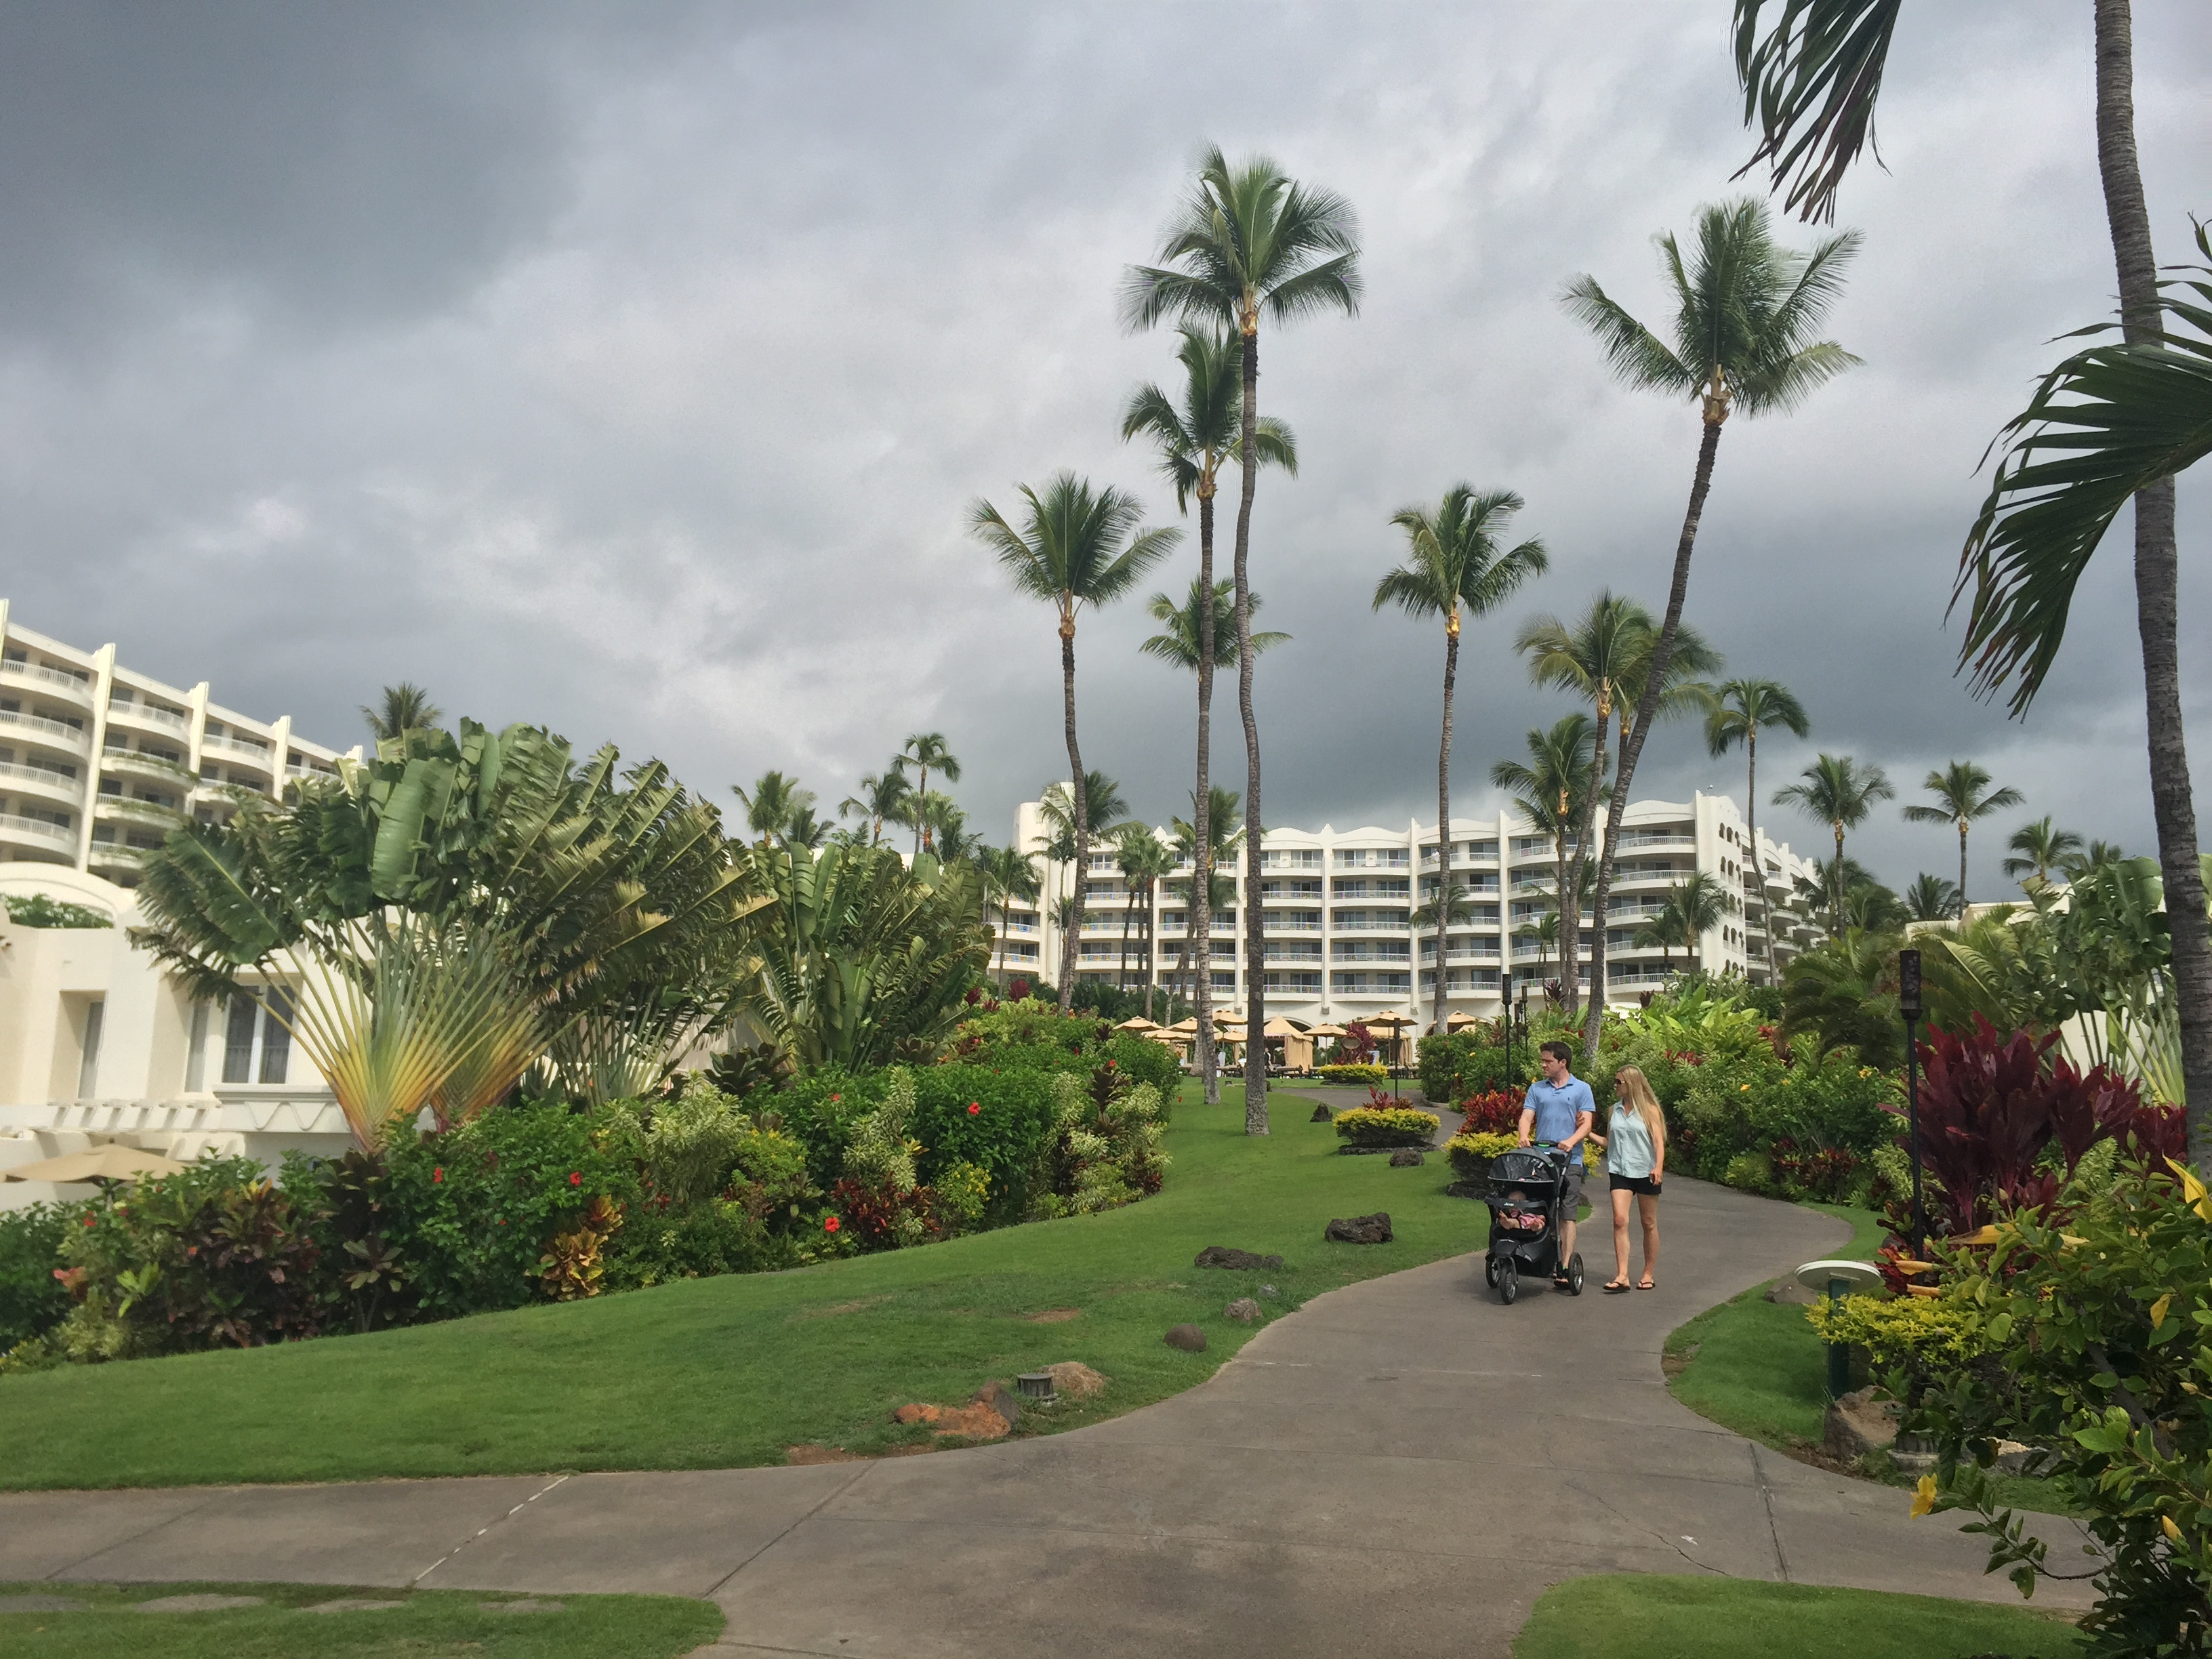 The Fairmont Kea Lani is great for young couples as well as families and older travellers.